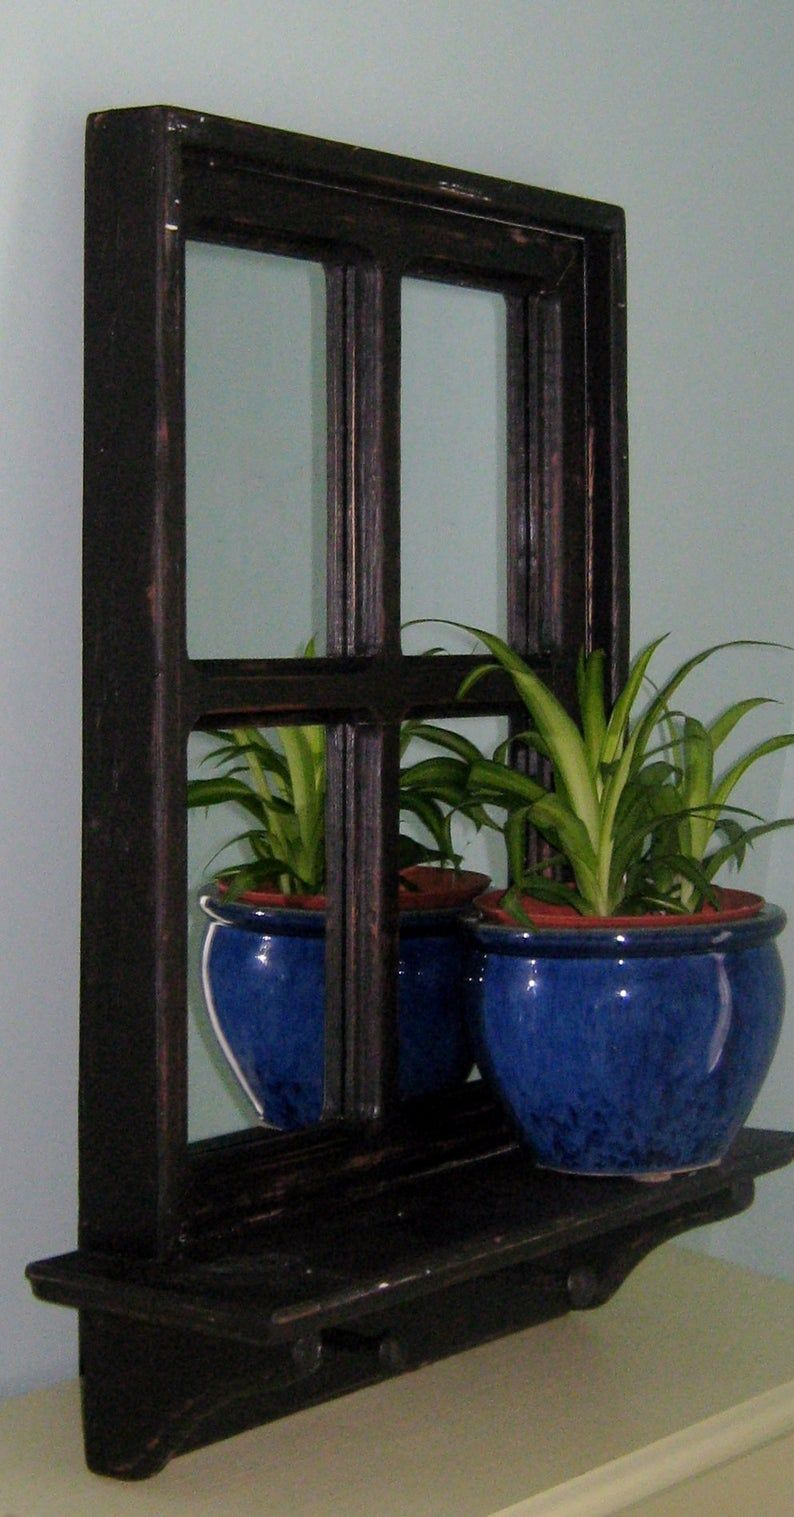 This listing is for a Black Mirror Shabby Chic Mirrored